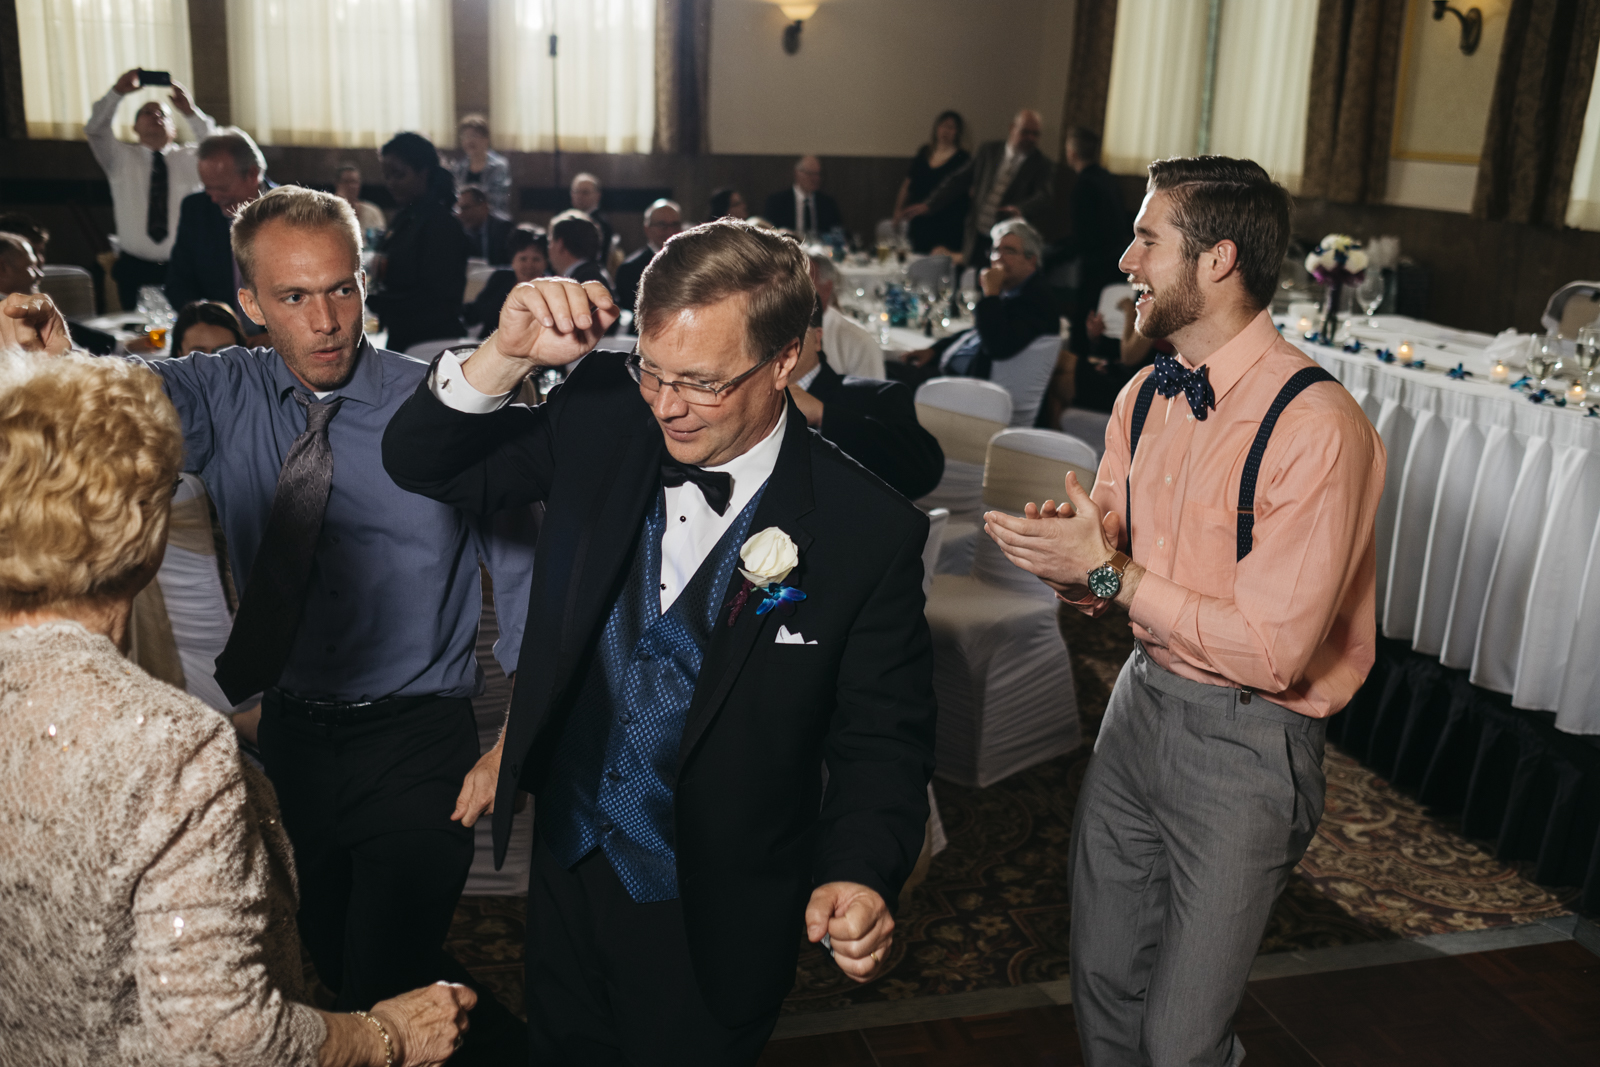 Father of the bride dancing at the wedding reception.